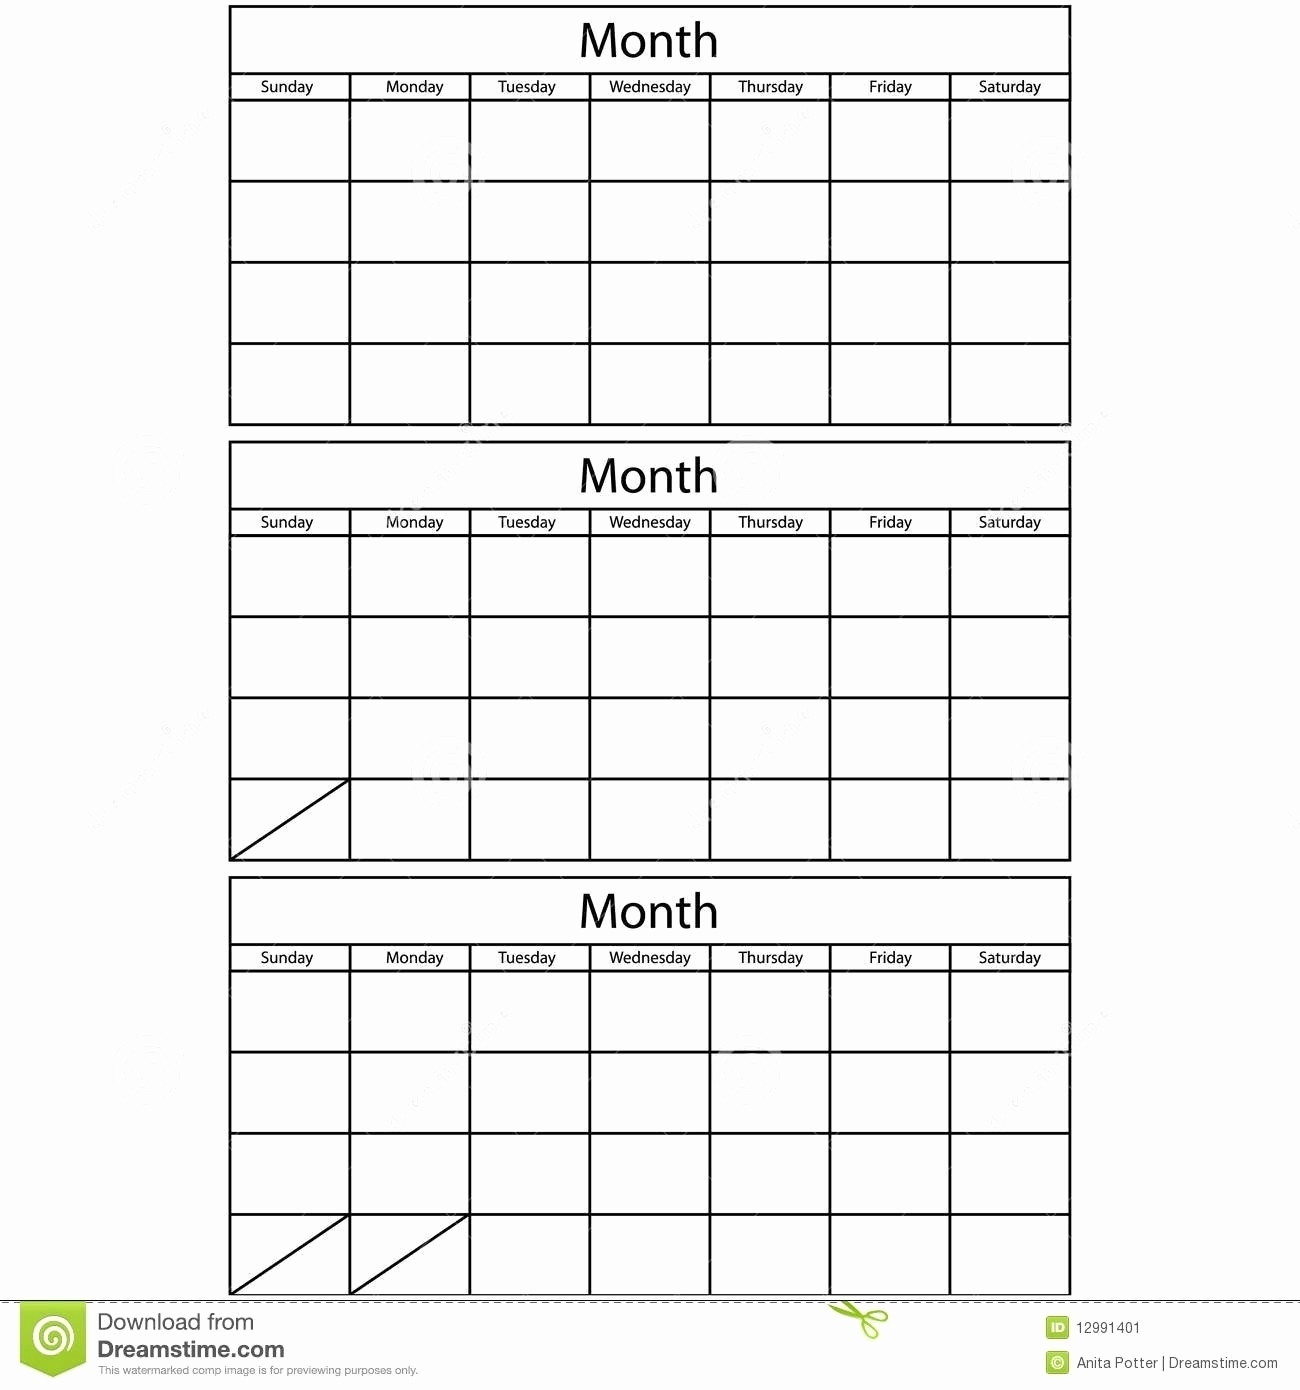 Free 3 Month Calendar Templates - Calendar Inspiration Design with Printable Blank Monthly Calendar Template